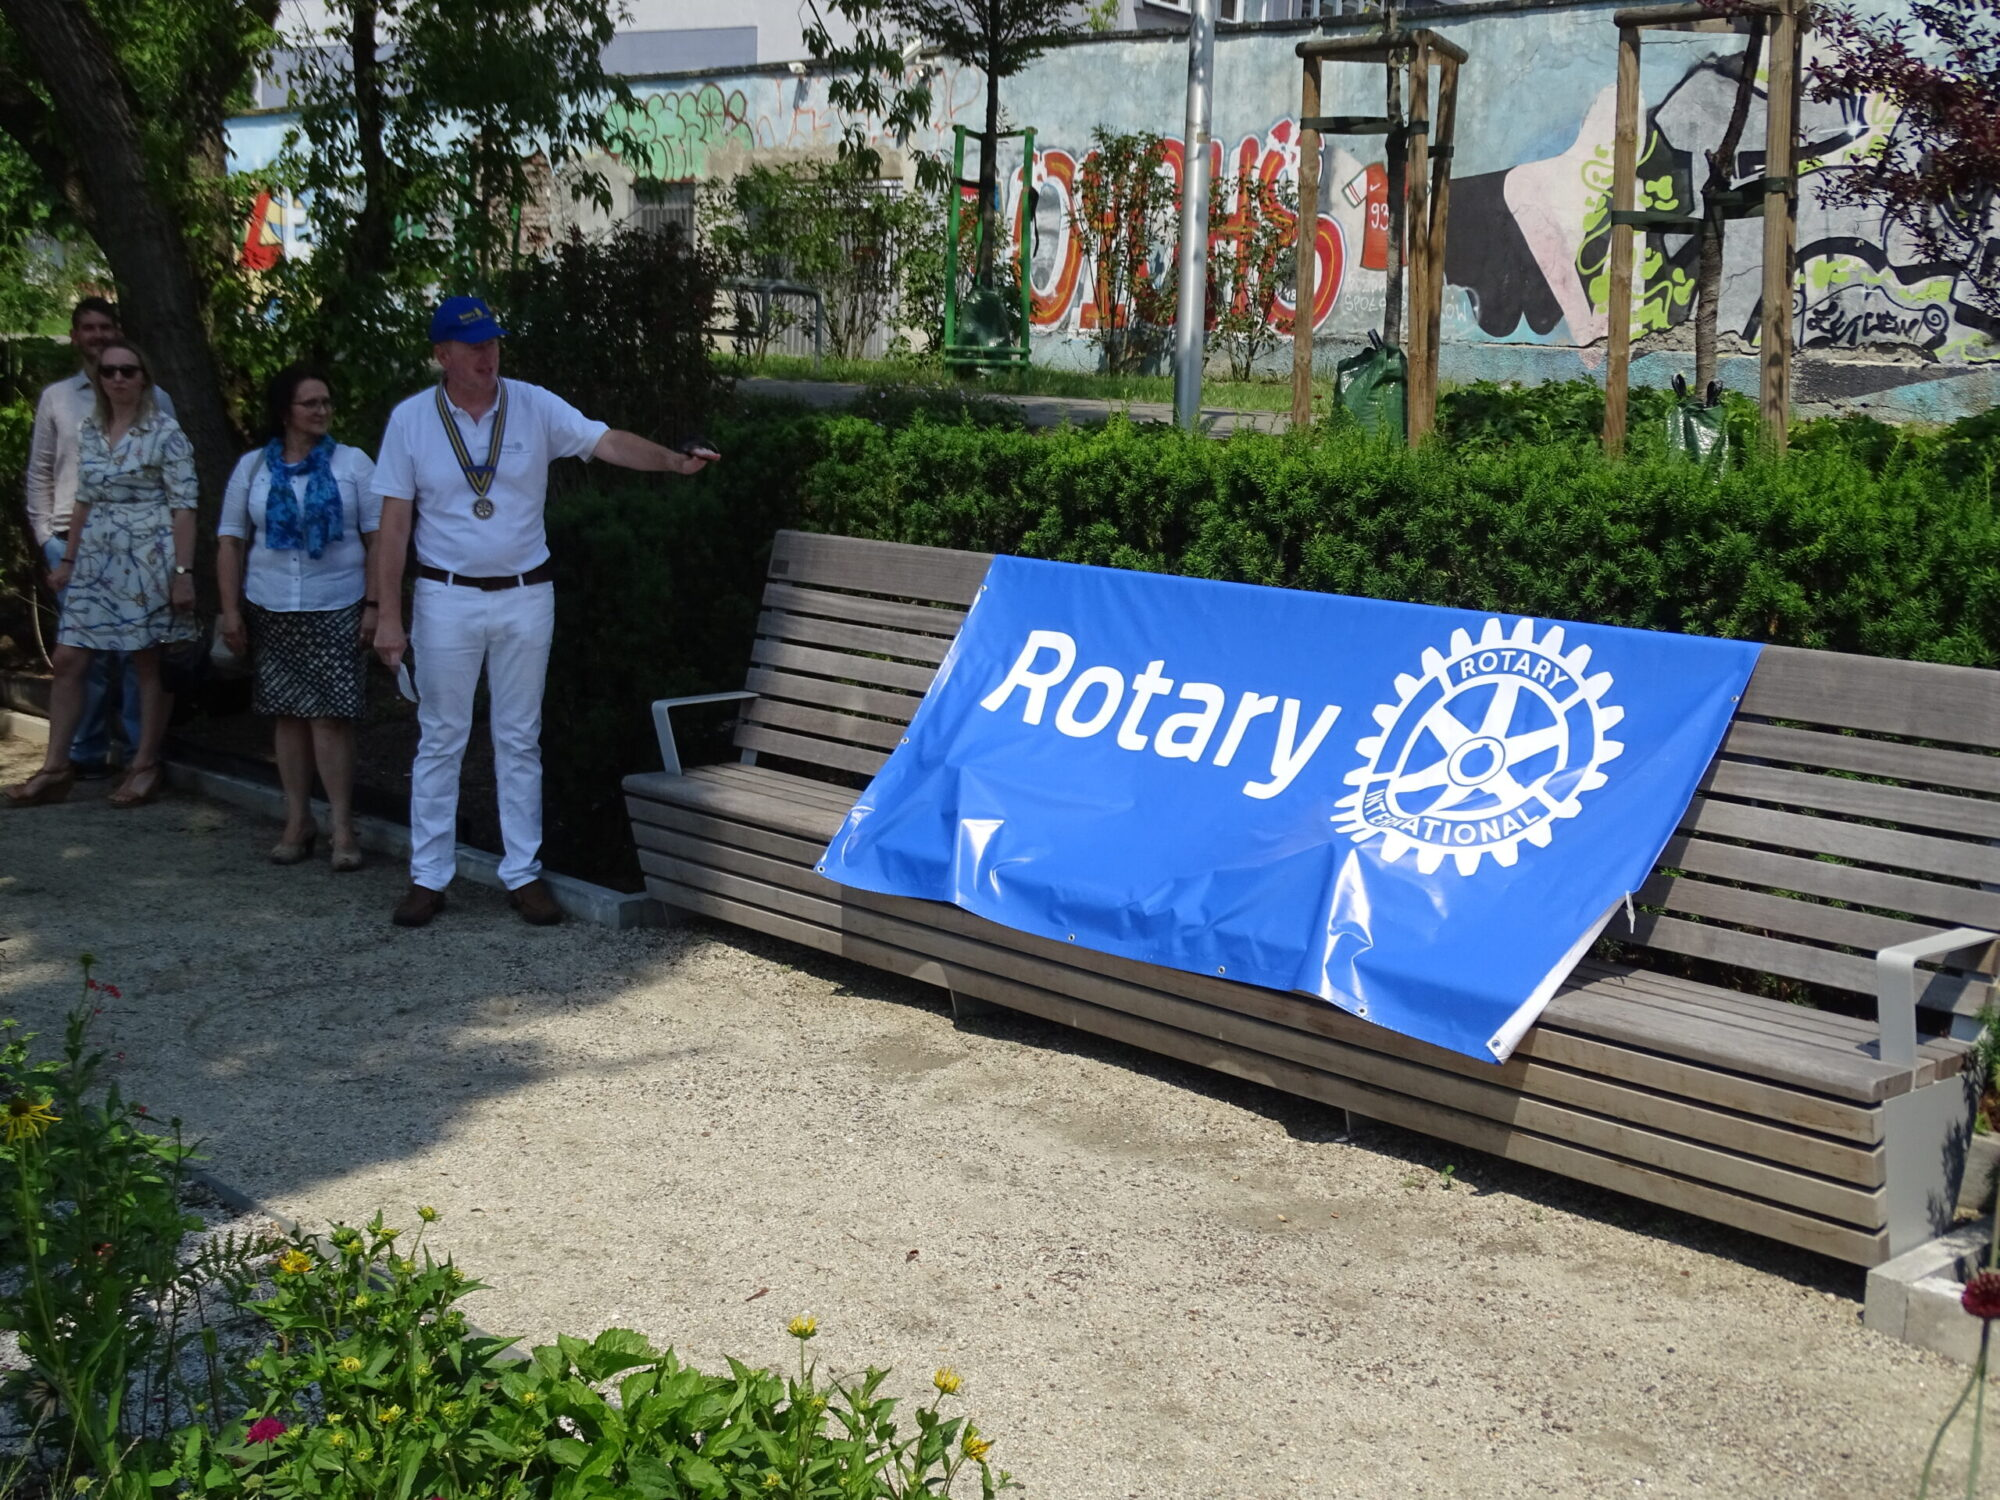 Rotarian Community Donation in the German-Polish Gardens in Warsaw